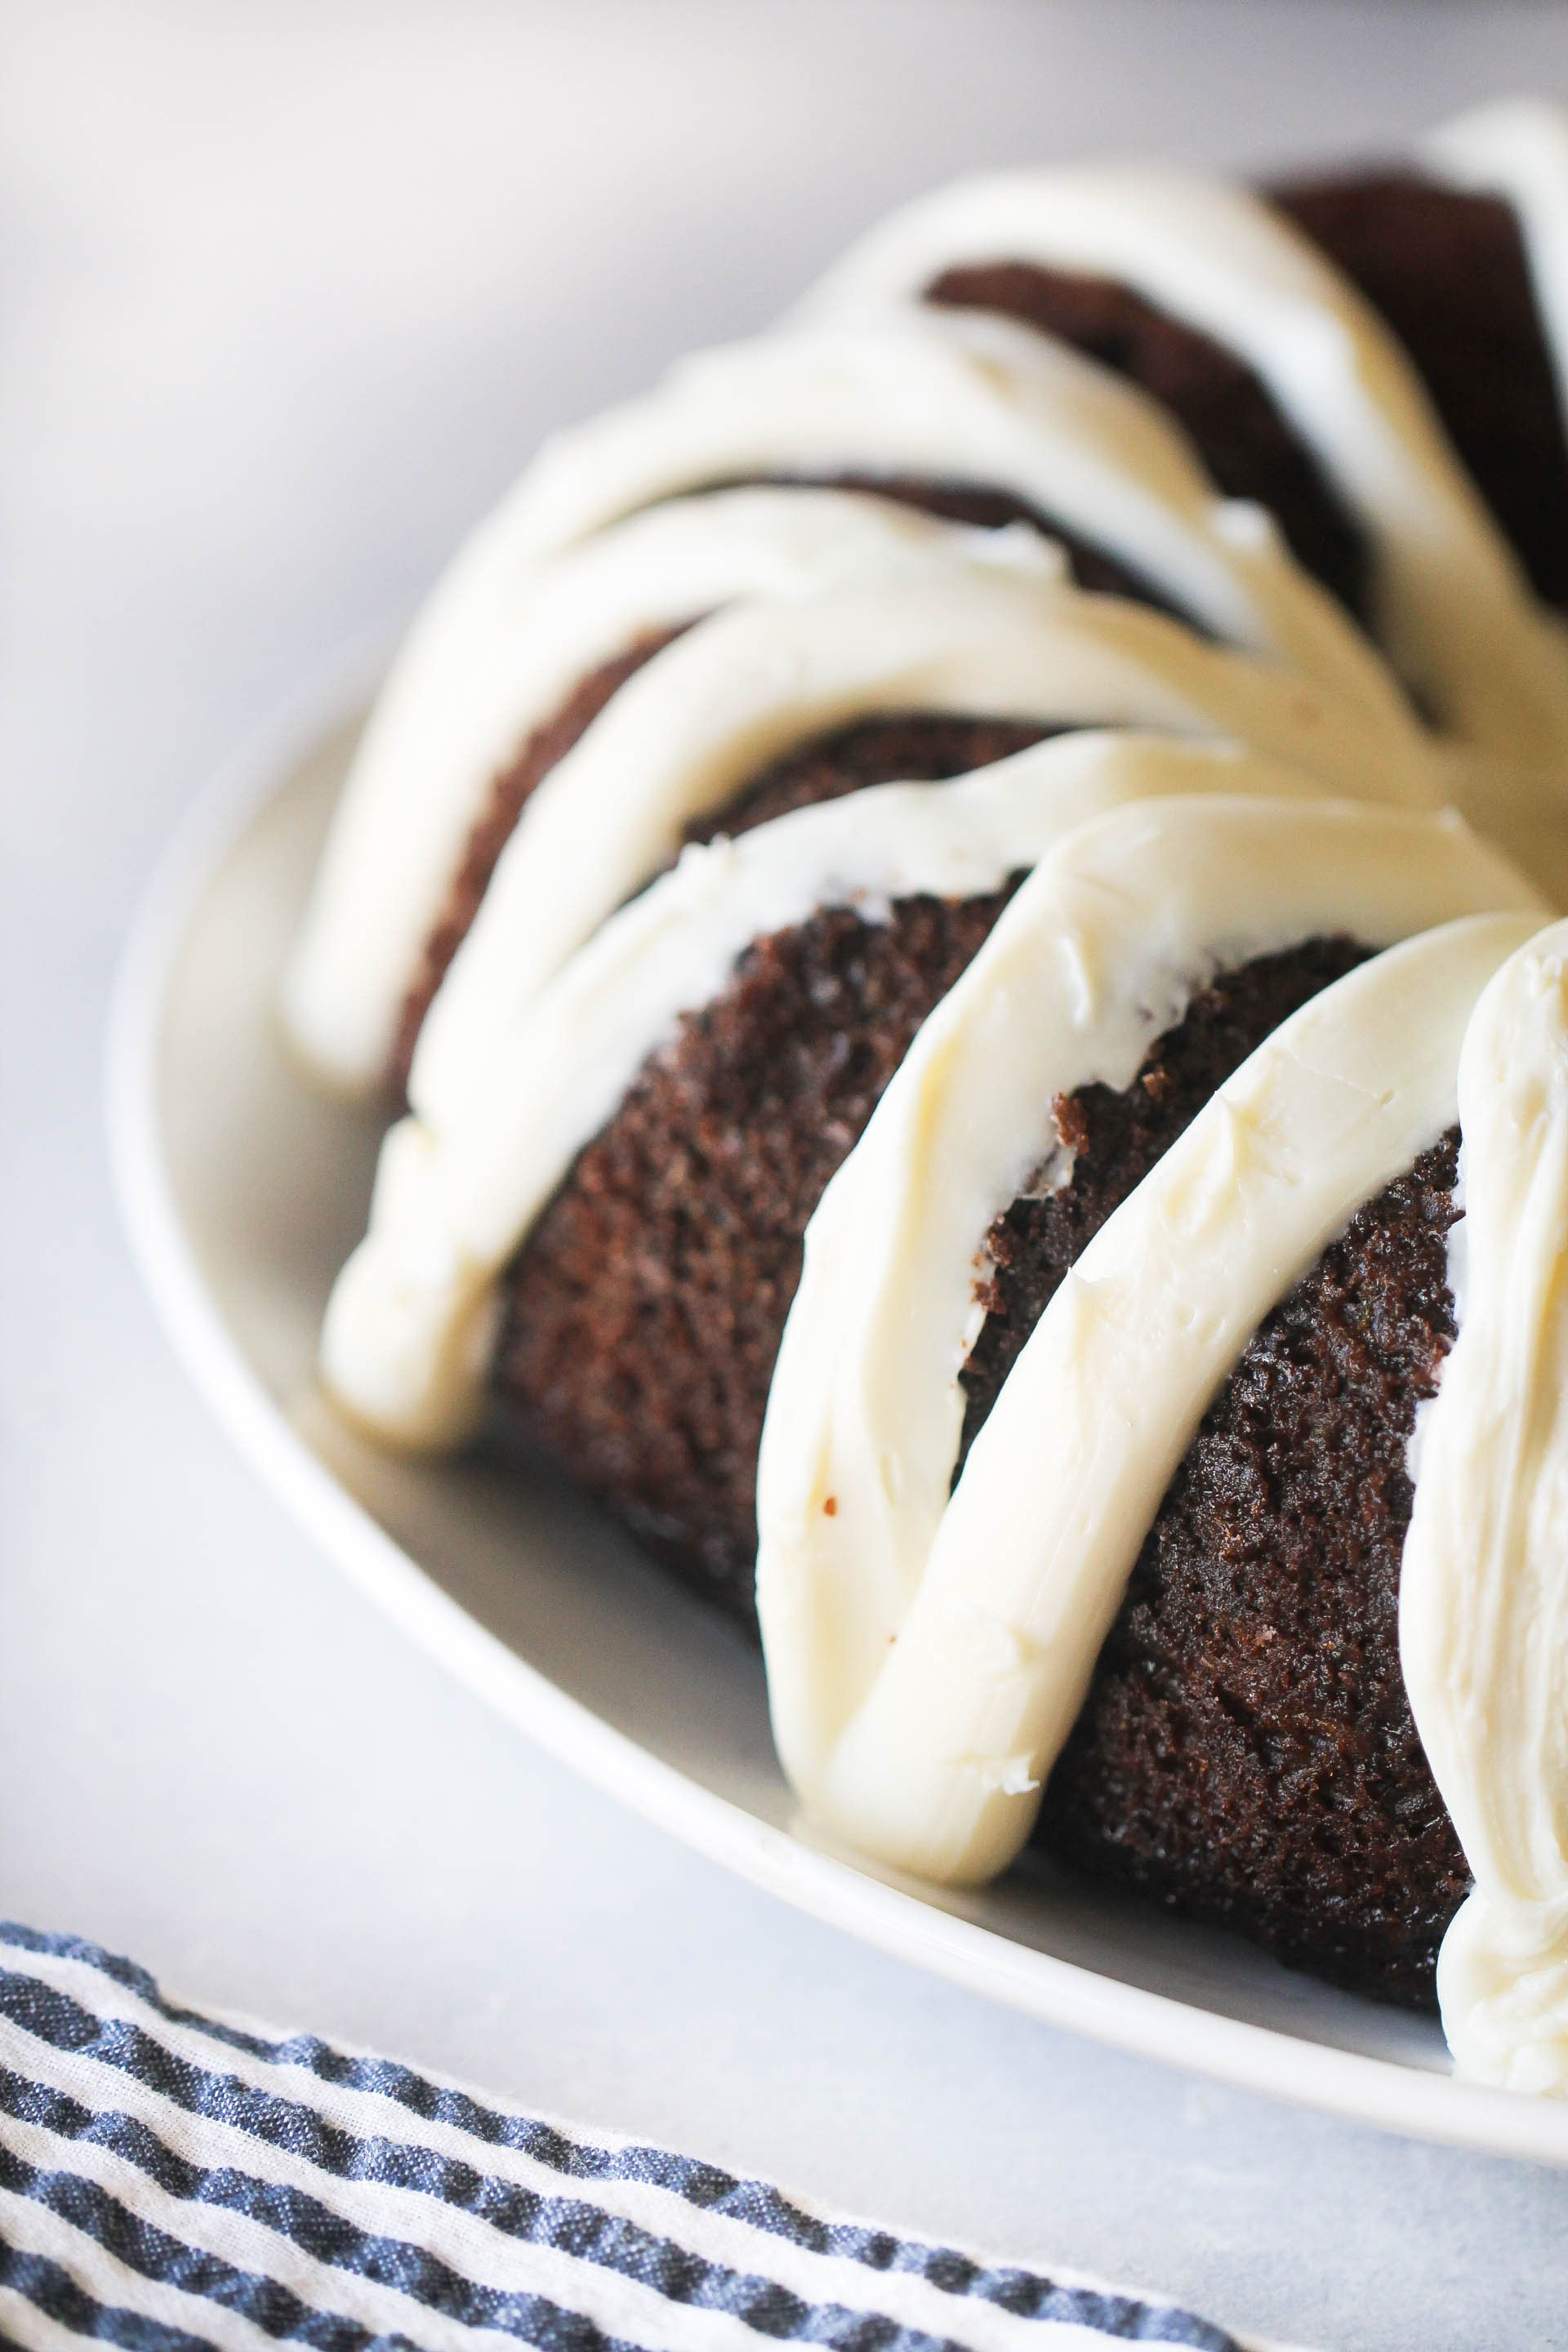 Chocolate Zucchini Cake topped with frosting on a serving platter